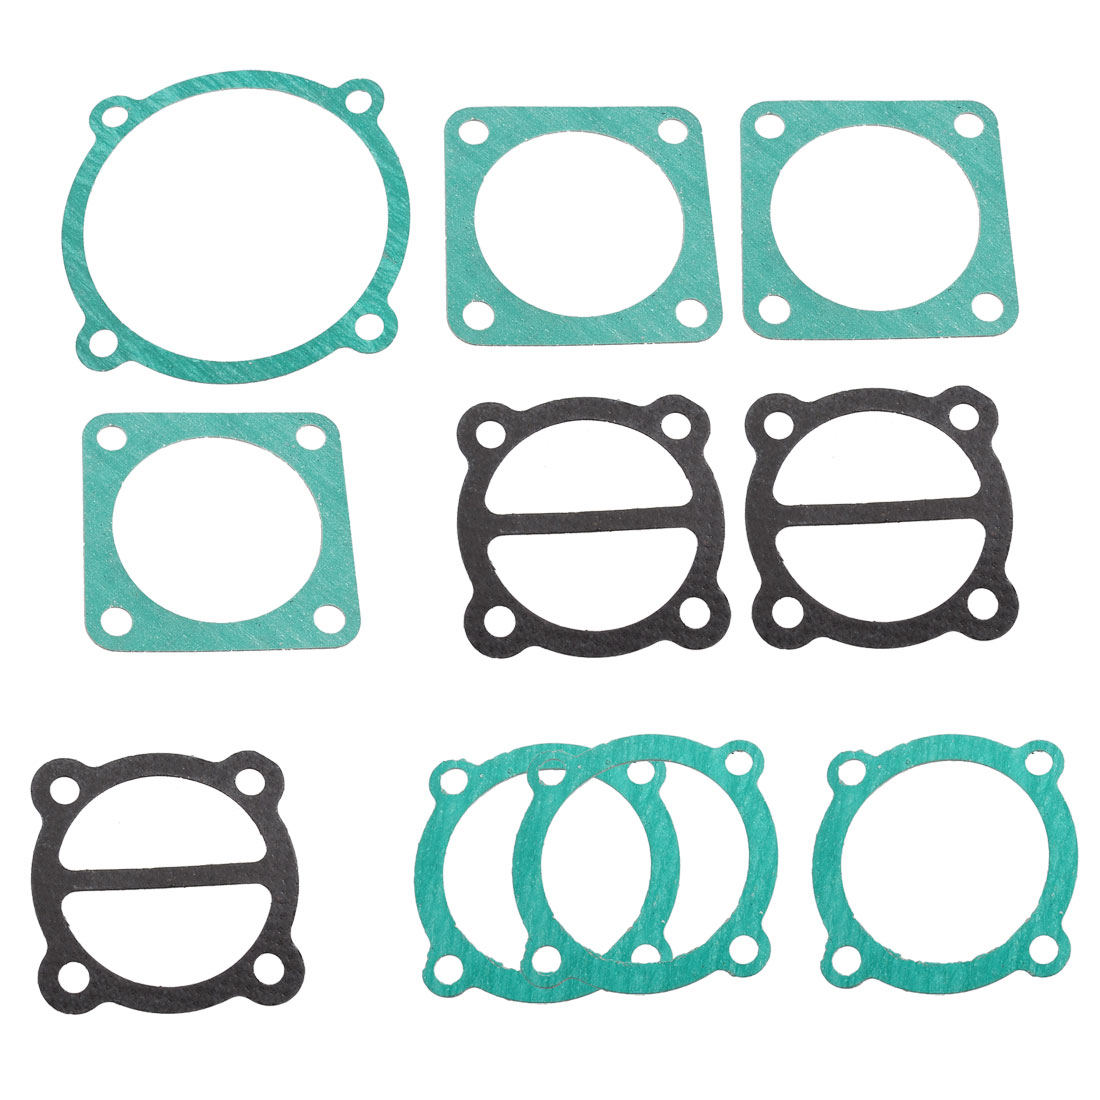 Paper Housing Air Compressor Cylinder Base Head Valve Plate Gaskets 10 Pcs